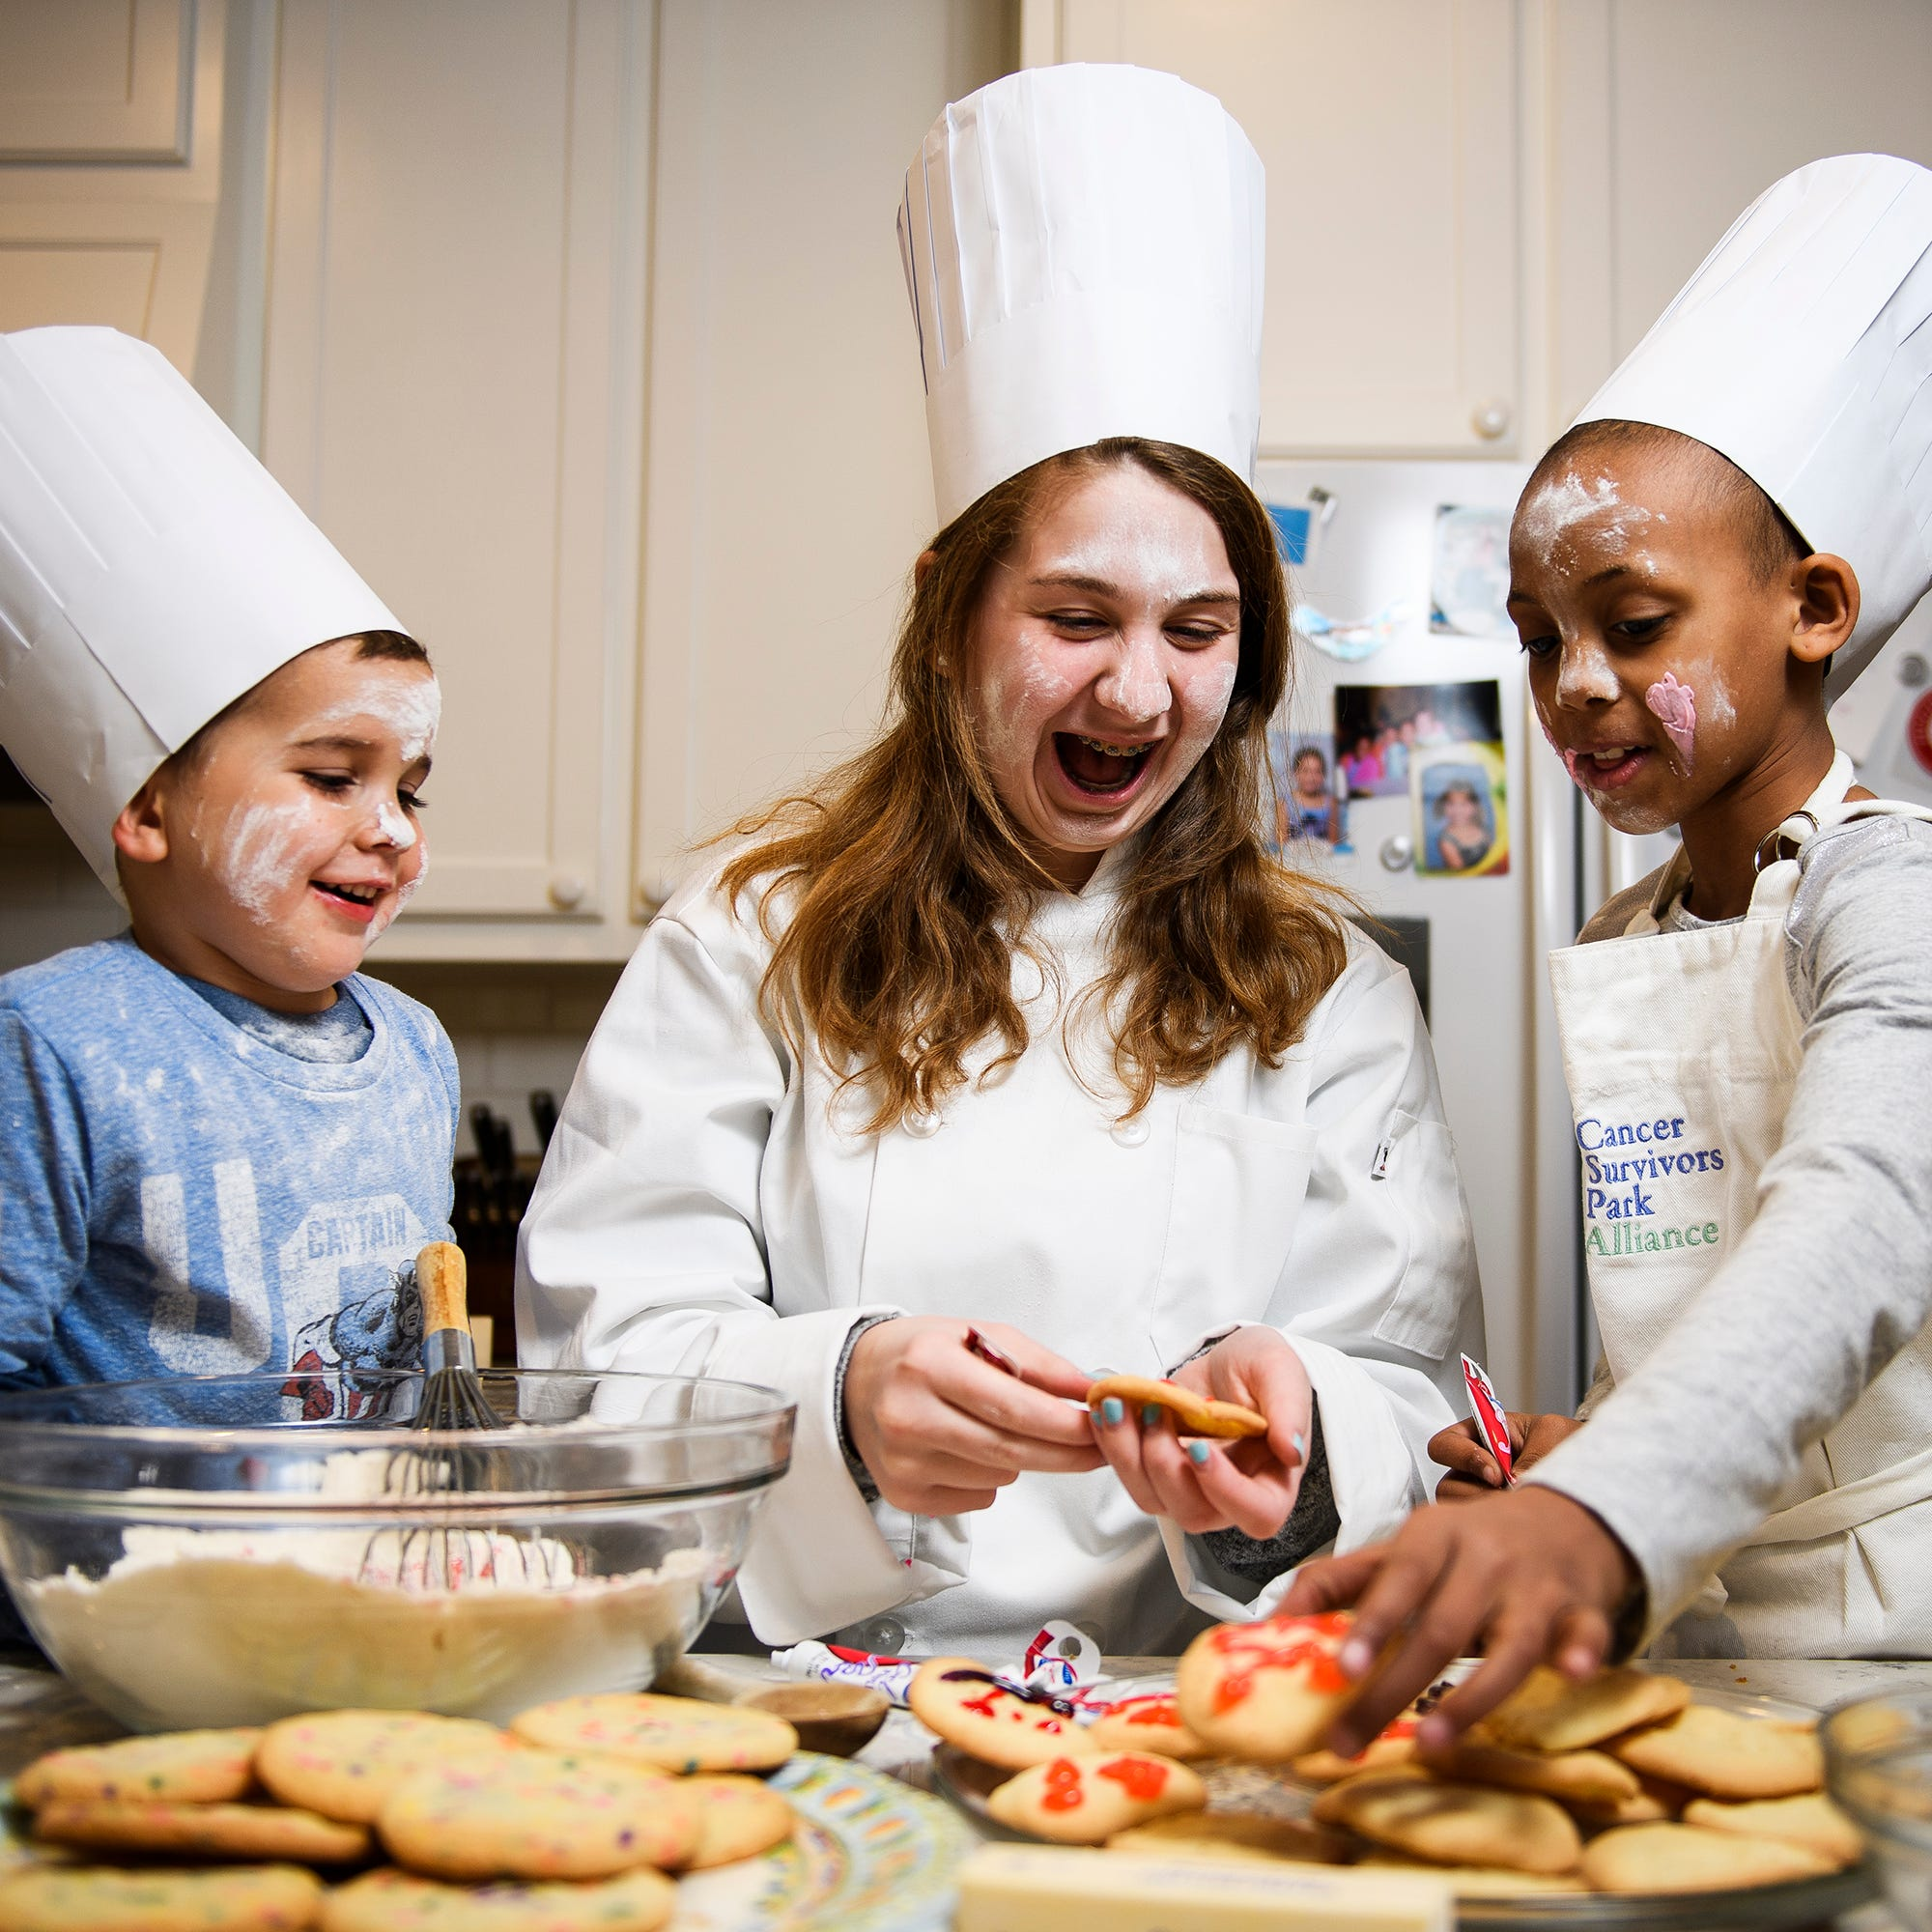 Meet 3 childhood cancer survivors who will add a new ingredient to CHOP! Cancer cook-off